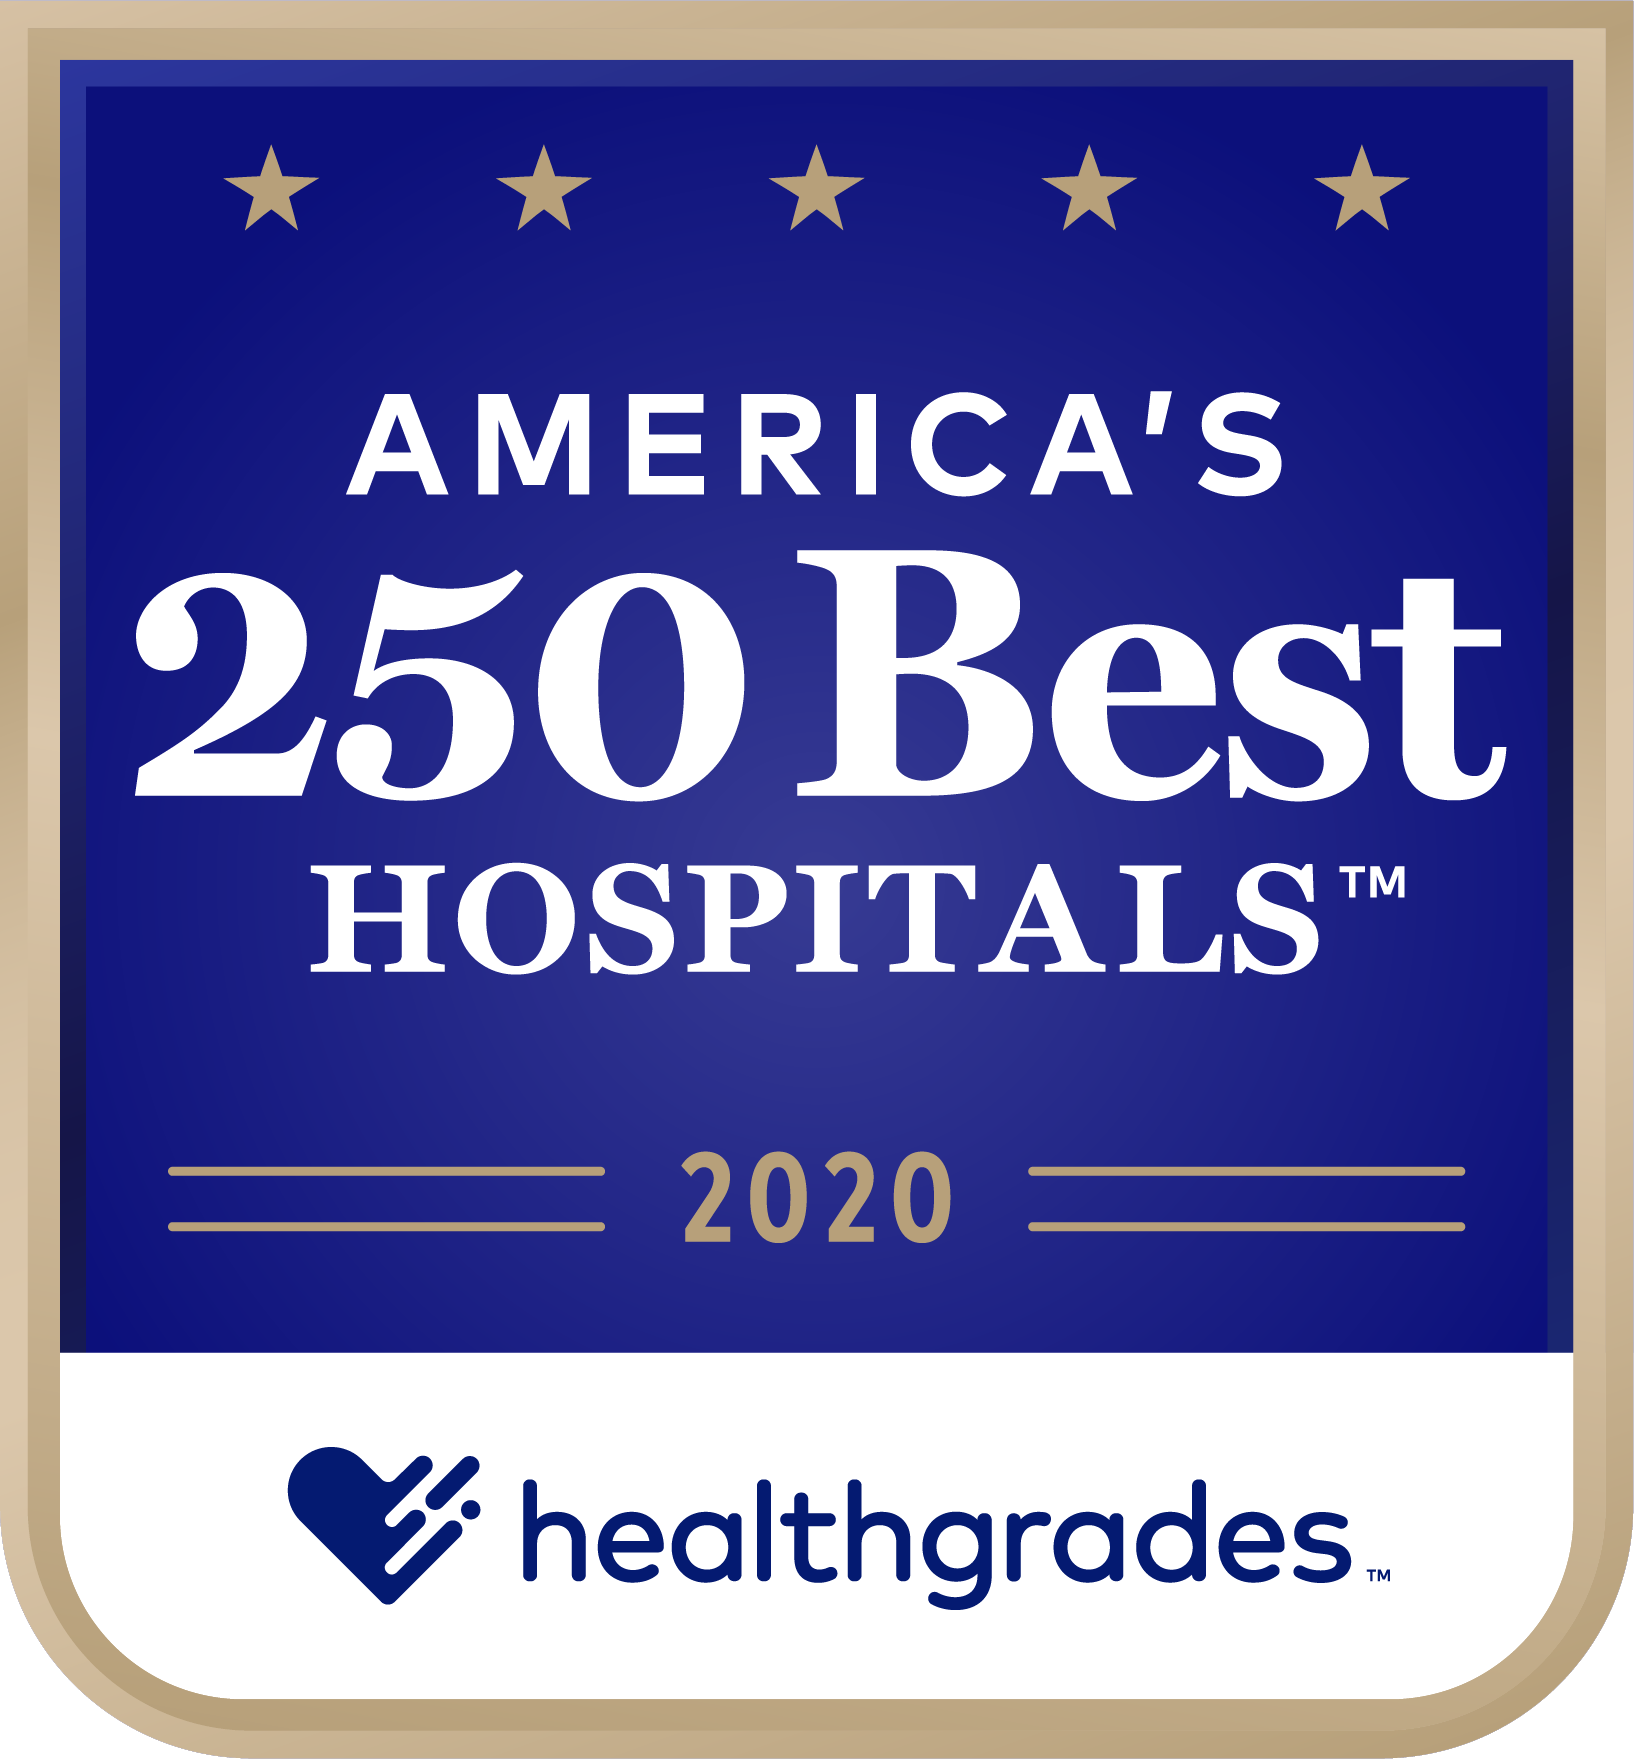 The Medical Center of Aurora Among Top 5 Percent of U.S. Hospitals for Clinical Outcomes According to Healthgrades